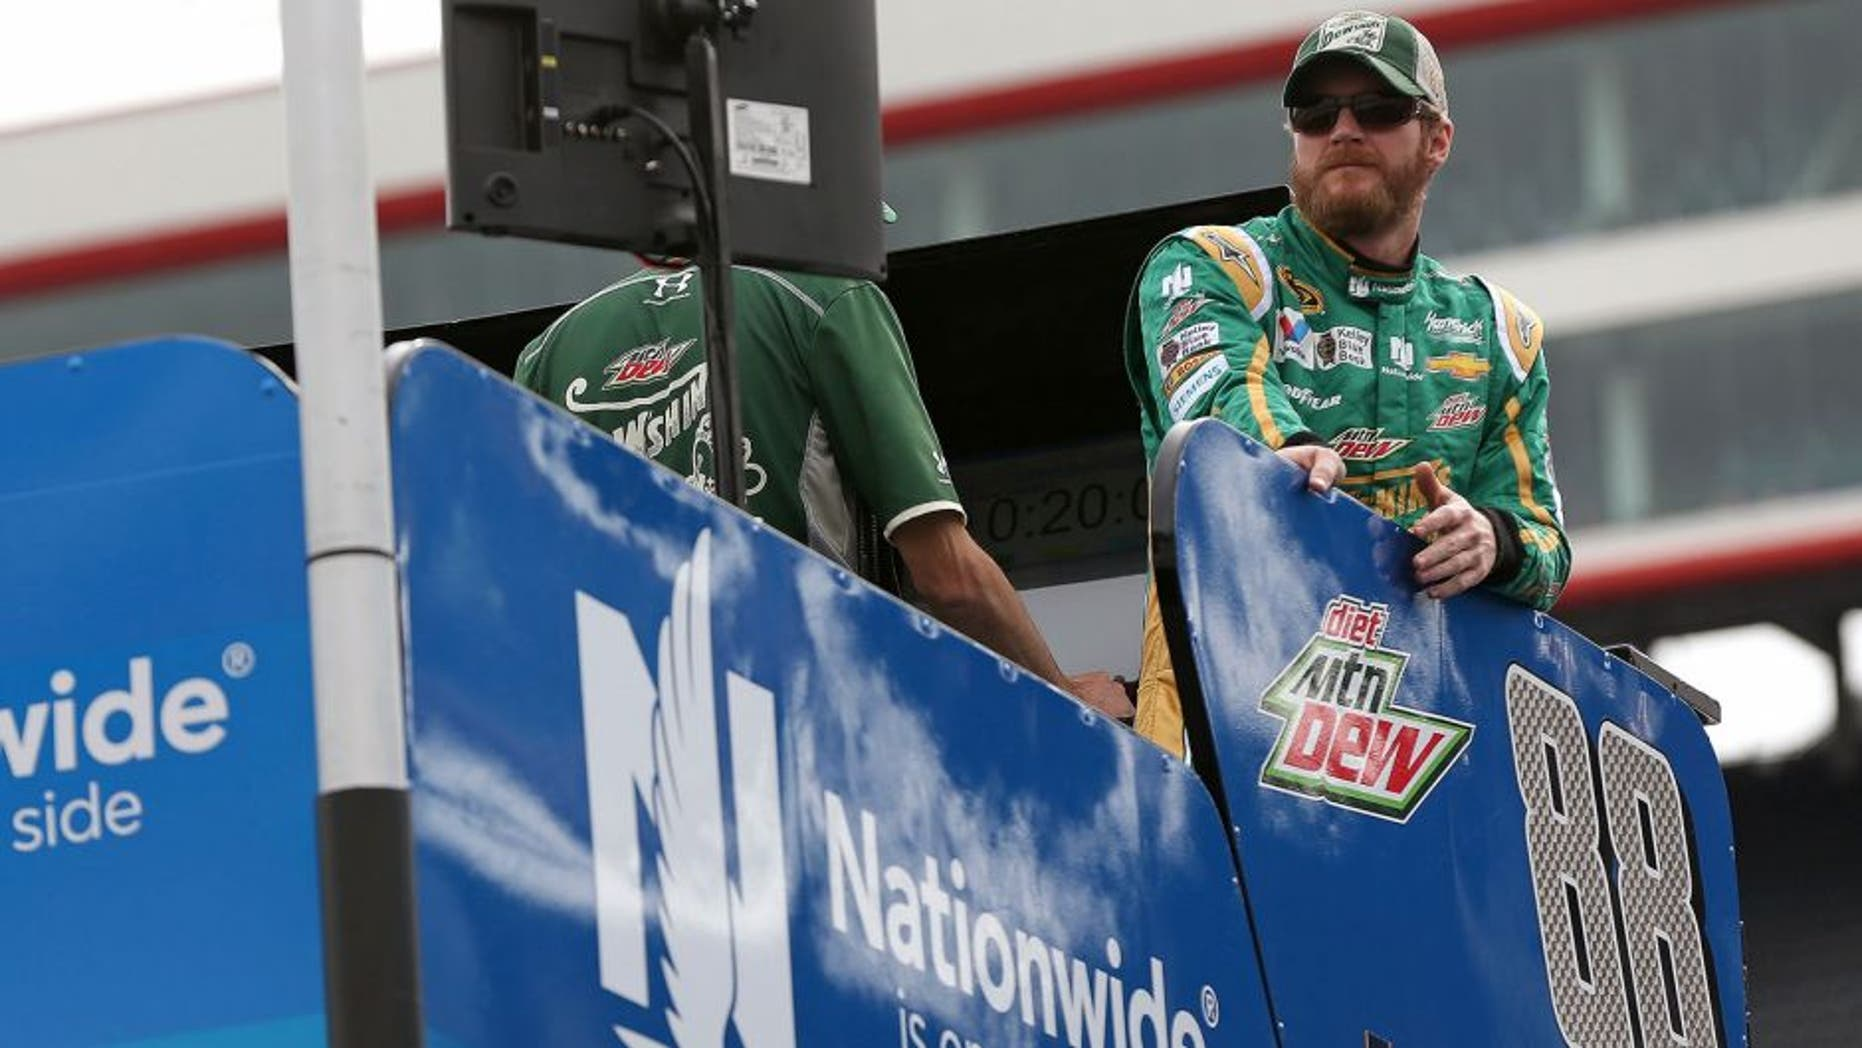 BRISTOL, TN - APRIL 17: Dale Earnhardt Jr., driver of the #88 Mountain Dew Dewshine Chevrolet, stands on top of his hauler prior to qualifying for the NASCAR Sprint Cup Series Food City 500 at Bristol Motor Speedway on April 17, 2015 in Bristol, Tennessee. (Photo by Mike Ehrmann/Getty Images)